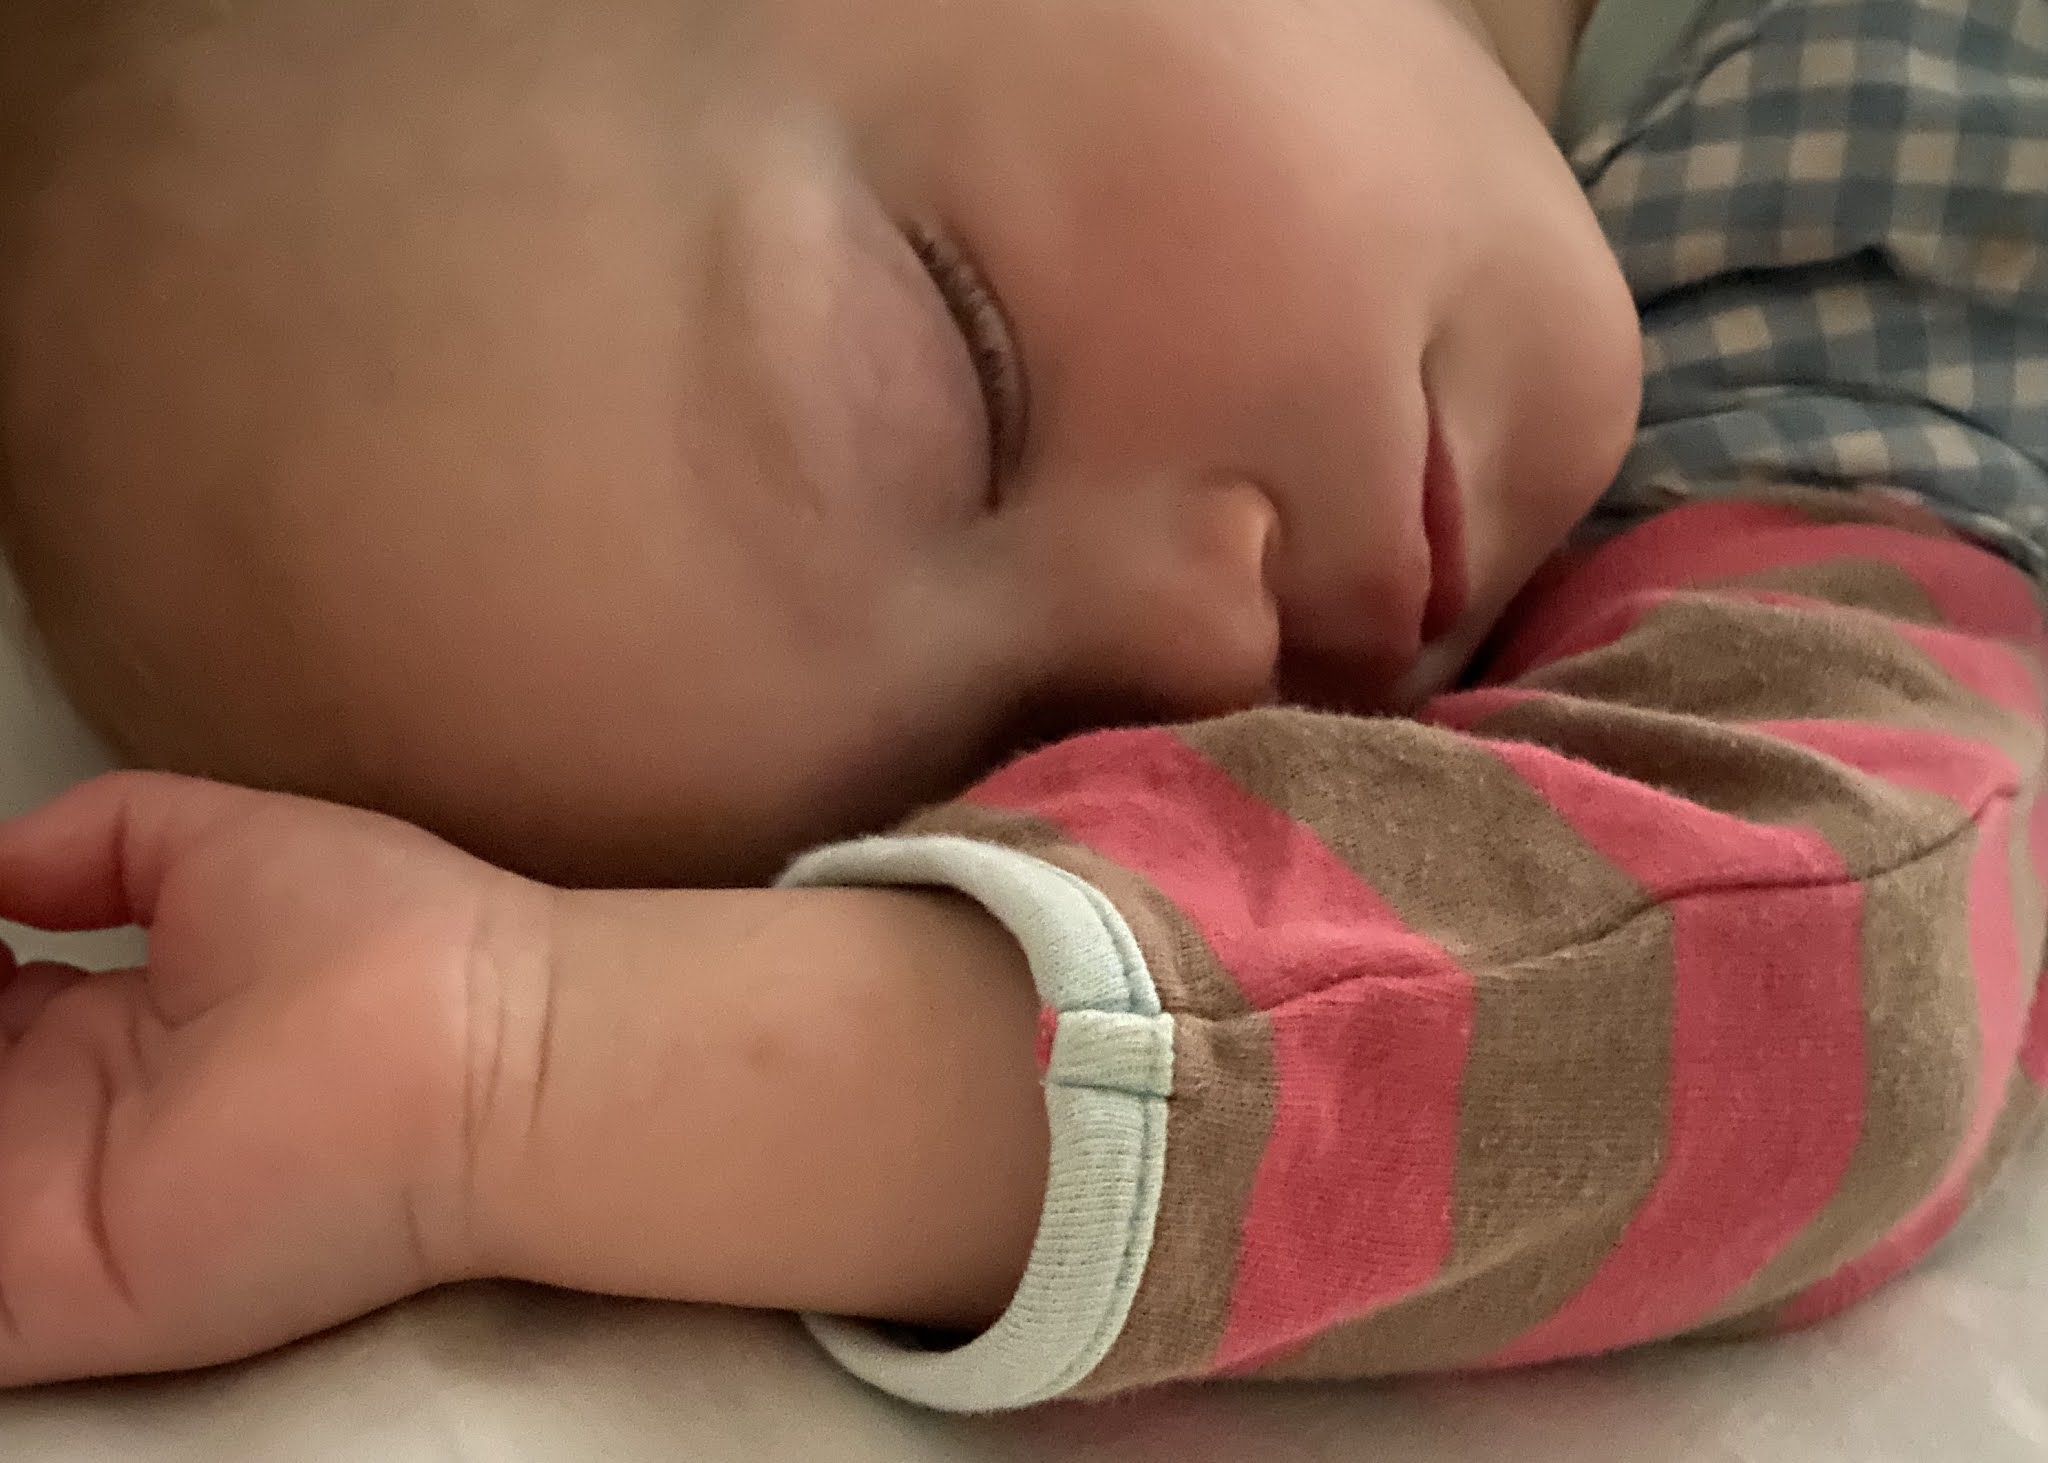 A sleeping toddler co-sleeping in parents bed